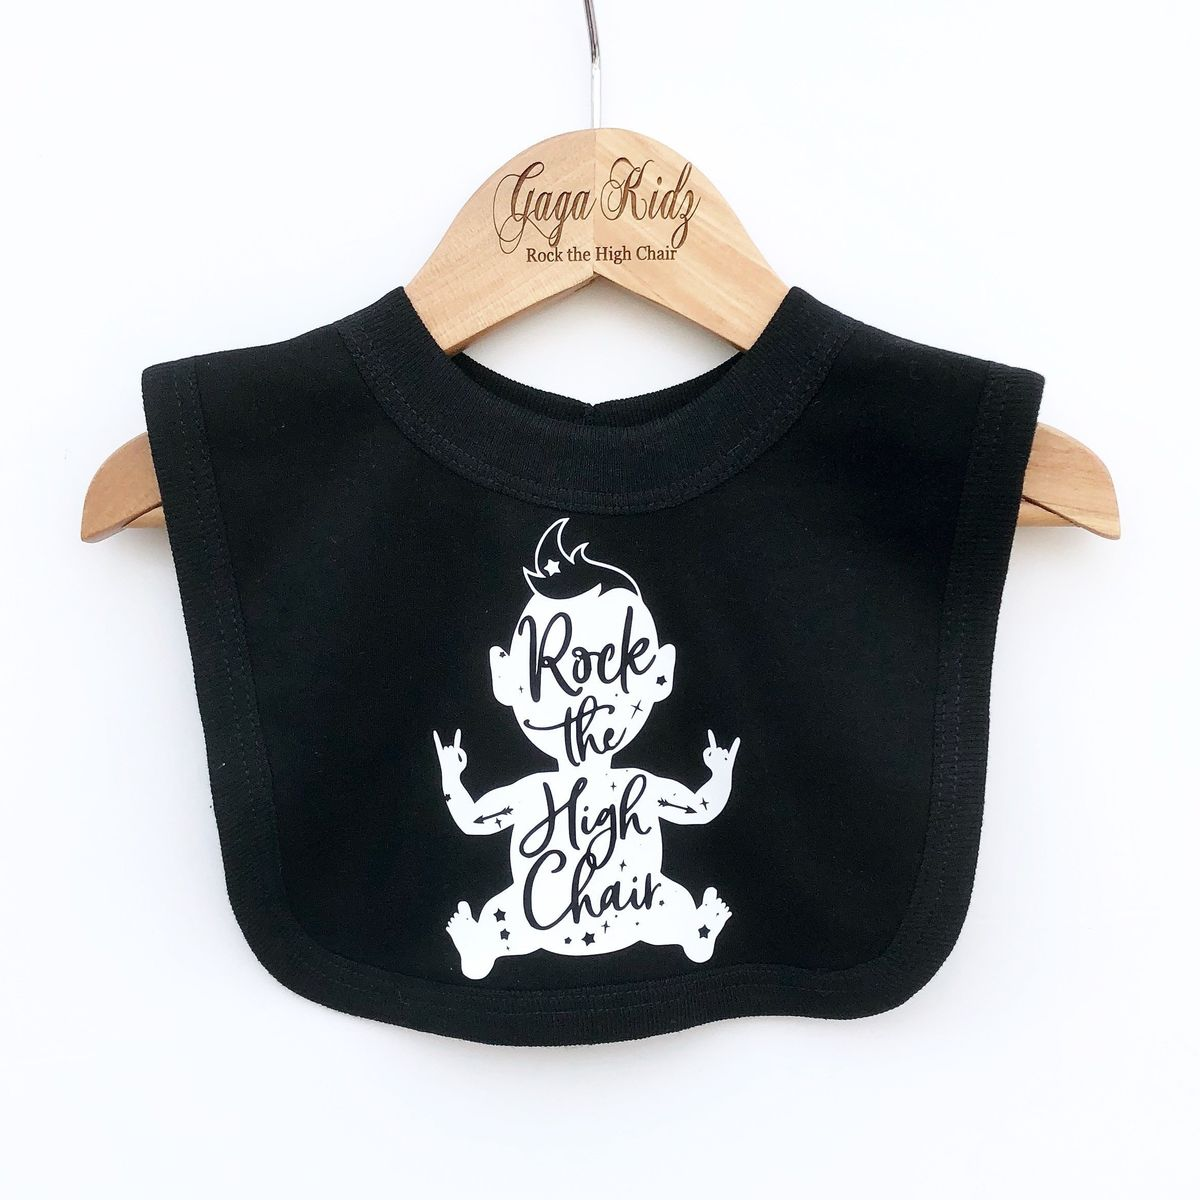 Rock the High Chair Baby Bib - product images  of